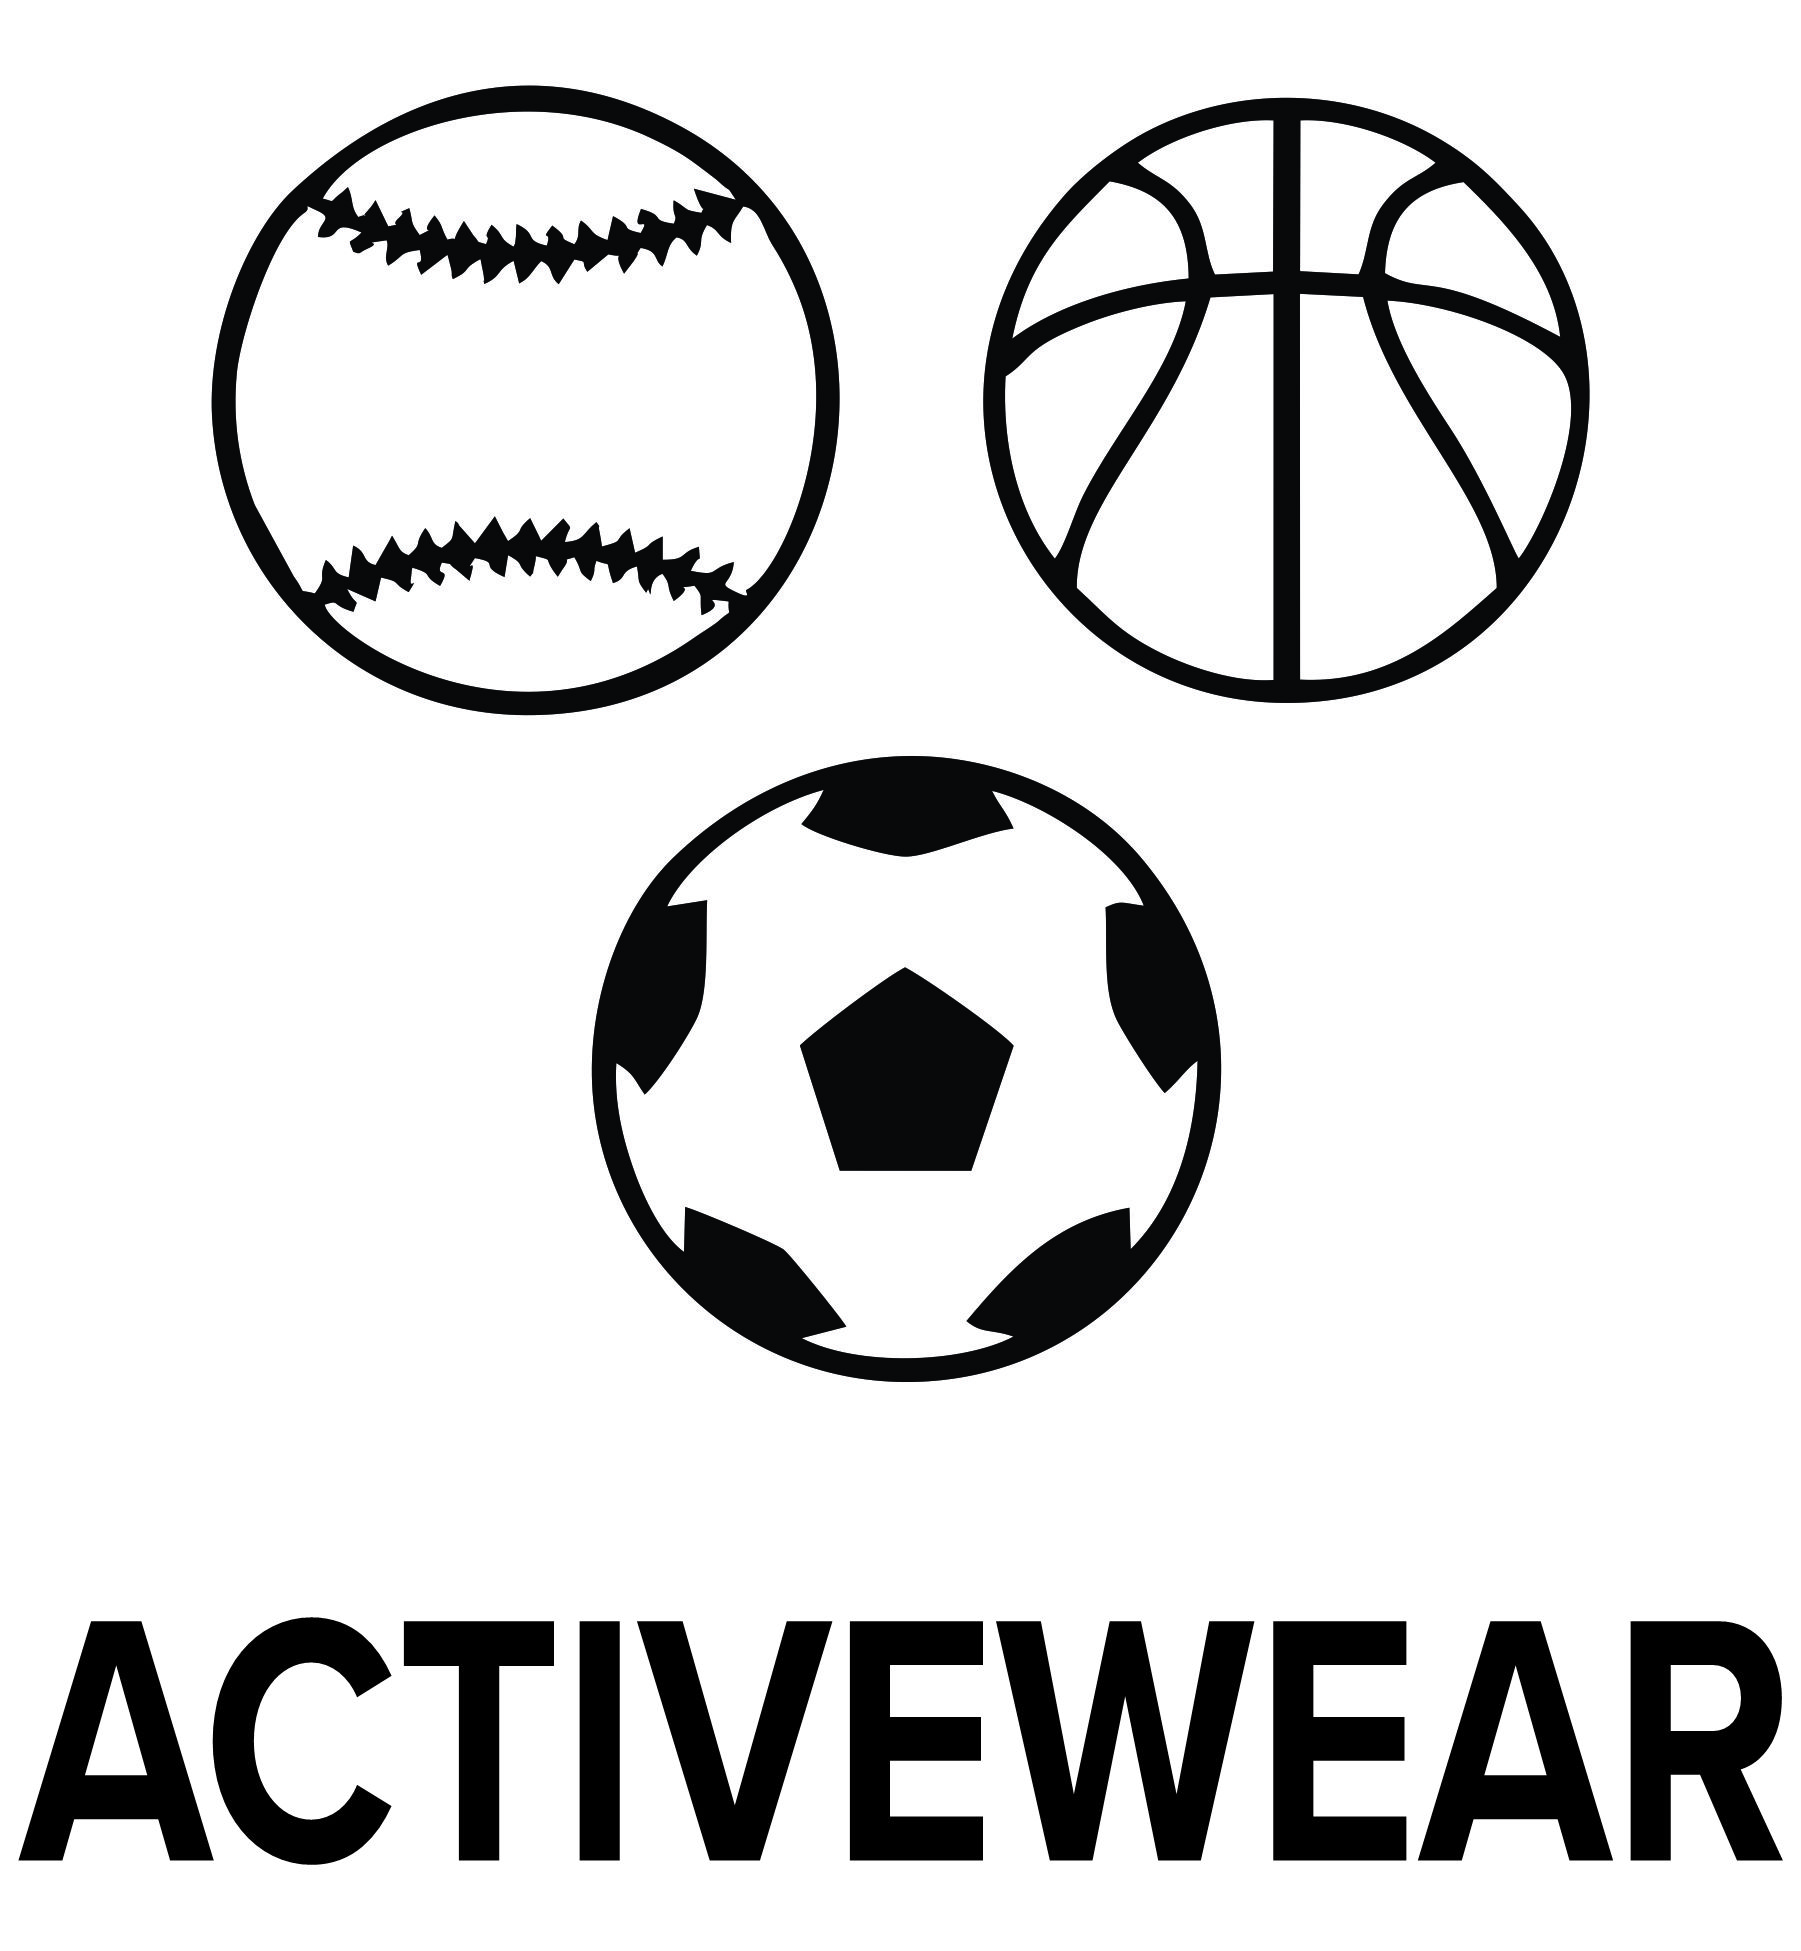 Activewear _ icon.jpg